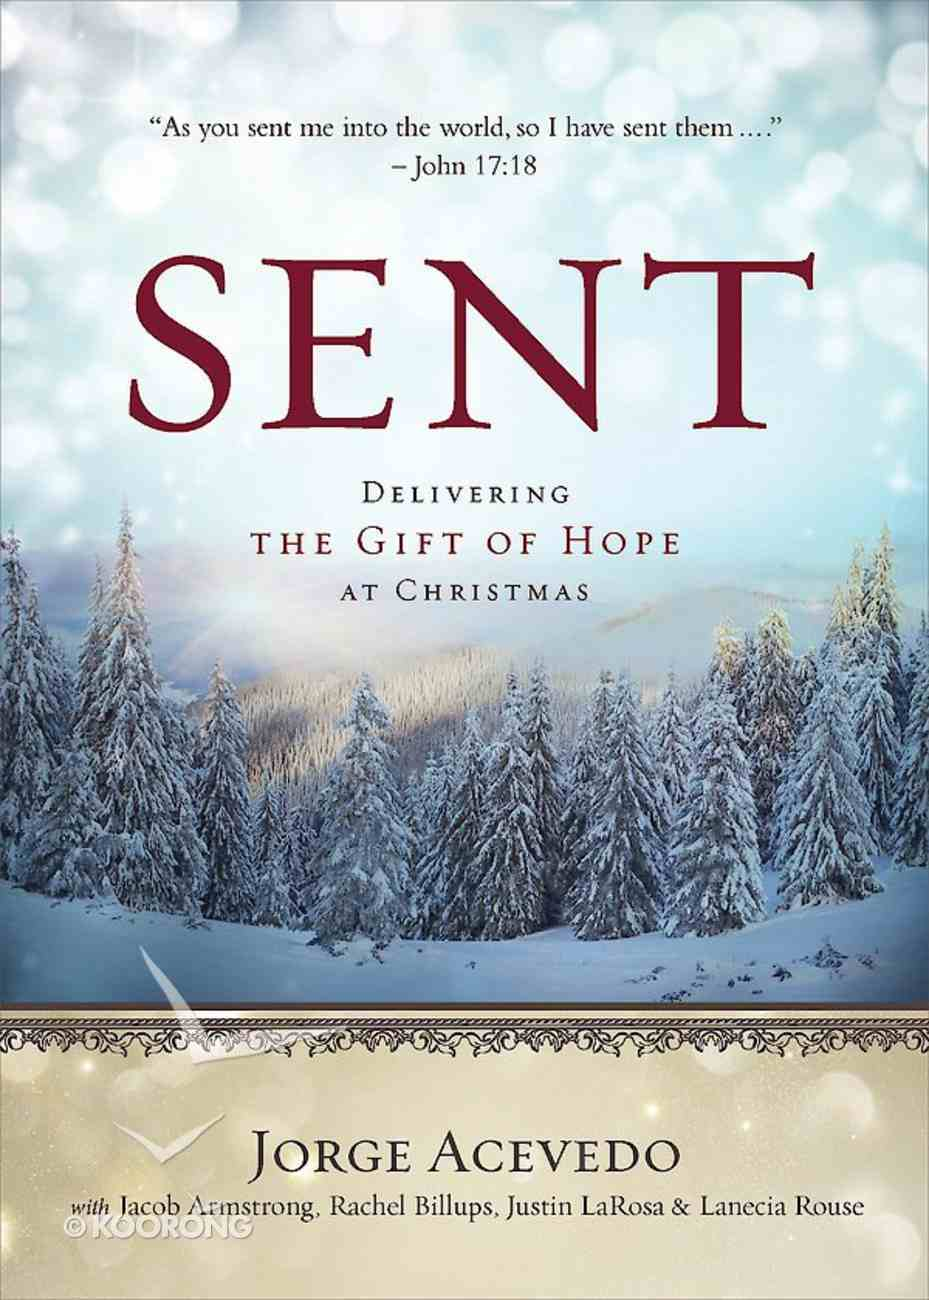 Delivering the Gift of Hope At Christmas (Sent Advent Series) eBook